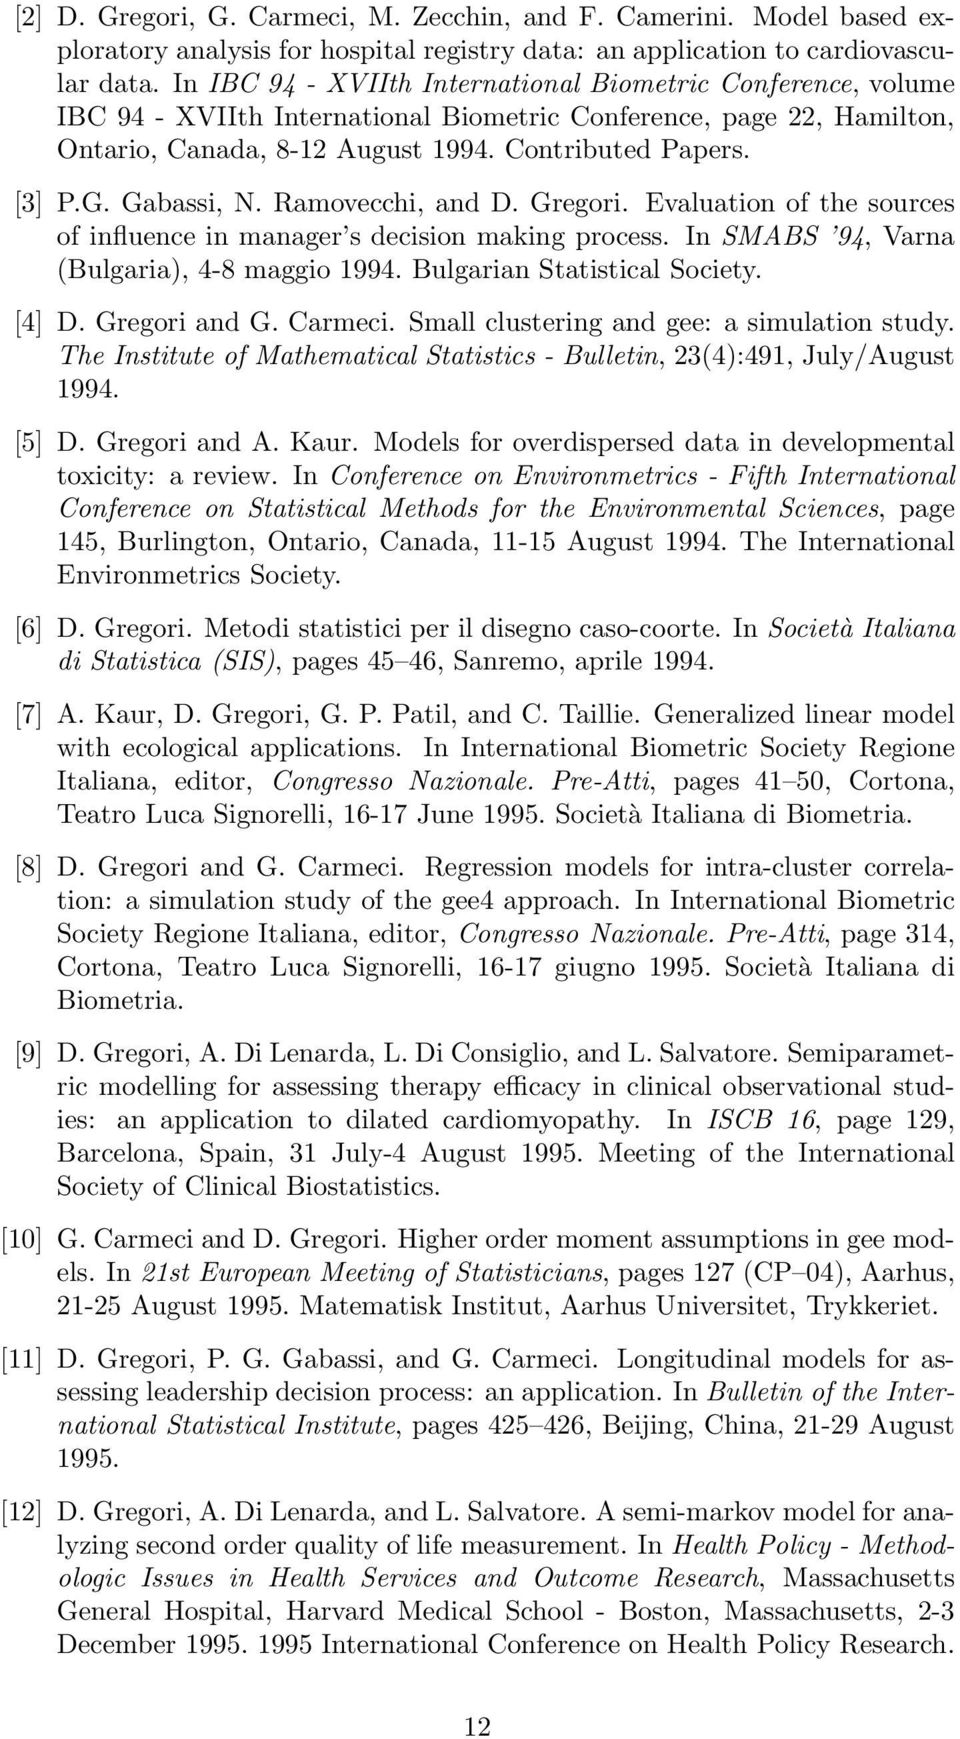 Gabassi, N. Ramovecchi, and D. Gregori. Evaluation of the sources of influence in manager s decision making process. In SMABS 94, Varna (Bulgaria), 4-8 maggio 1994. Bulgarian Statistical Society.